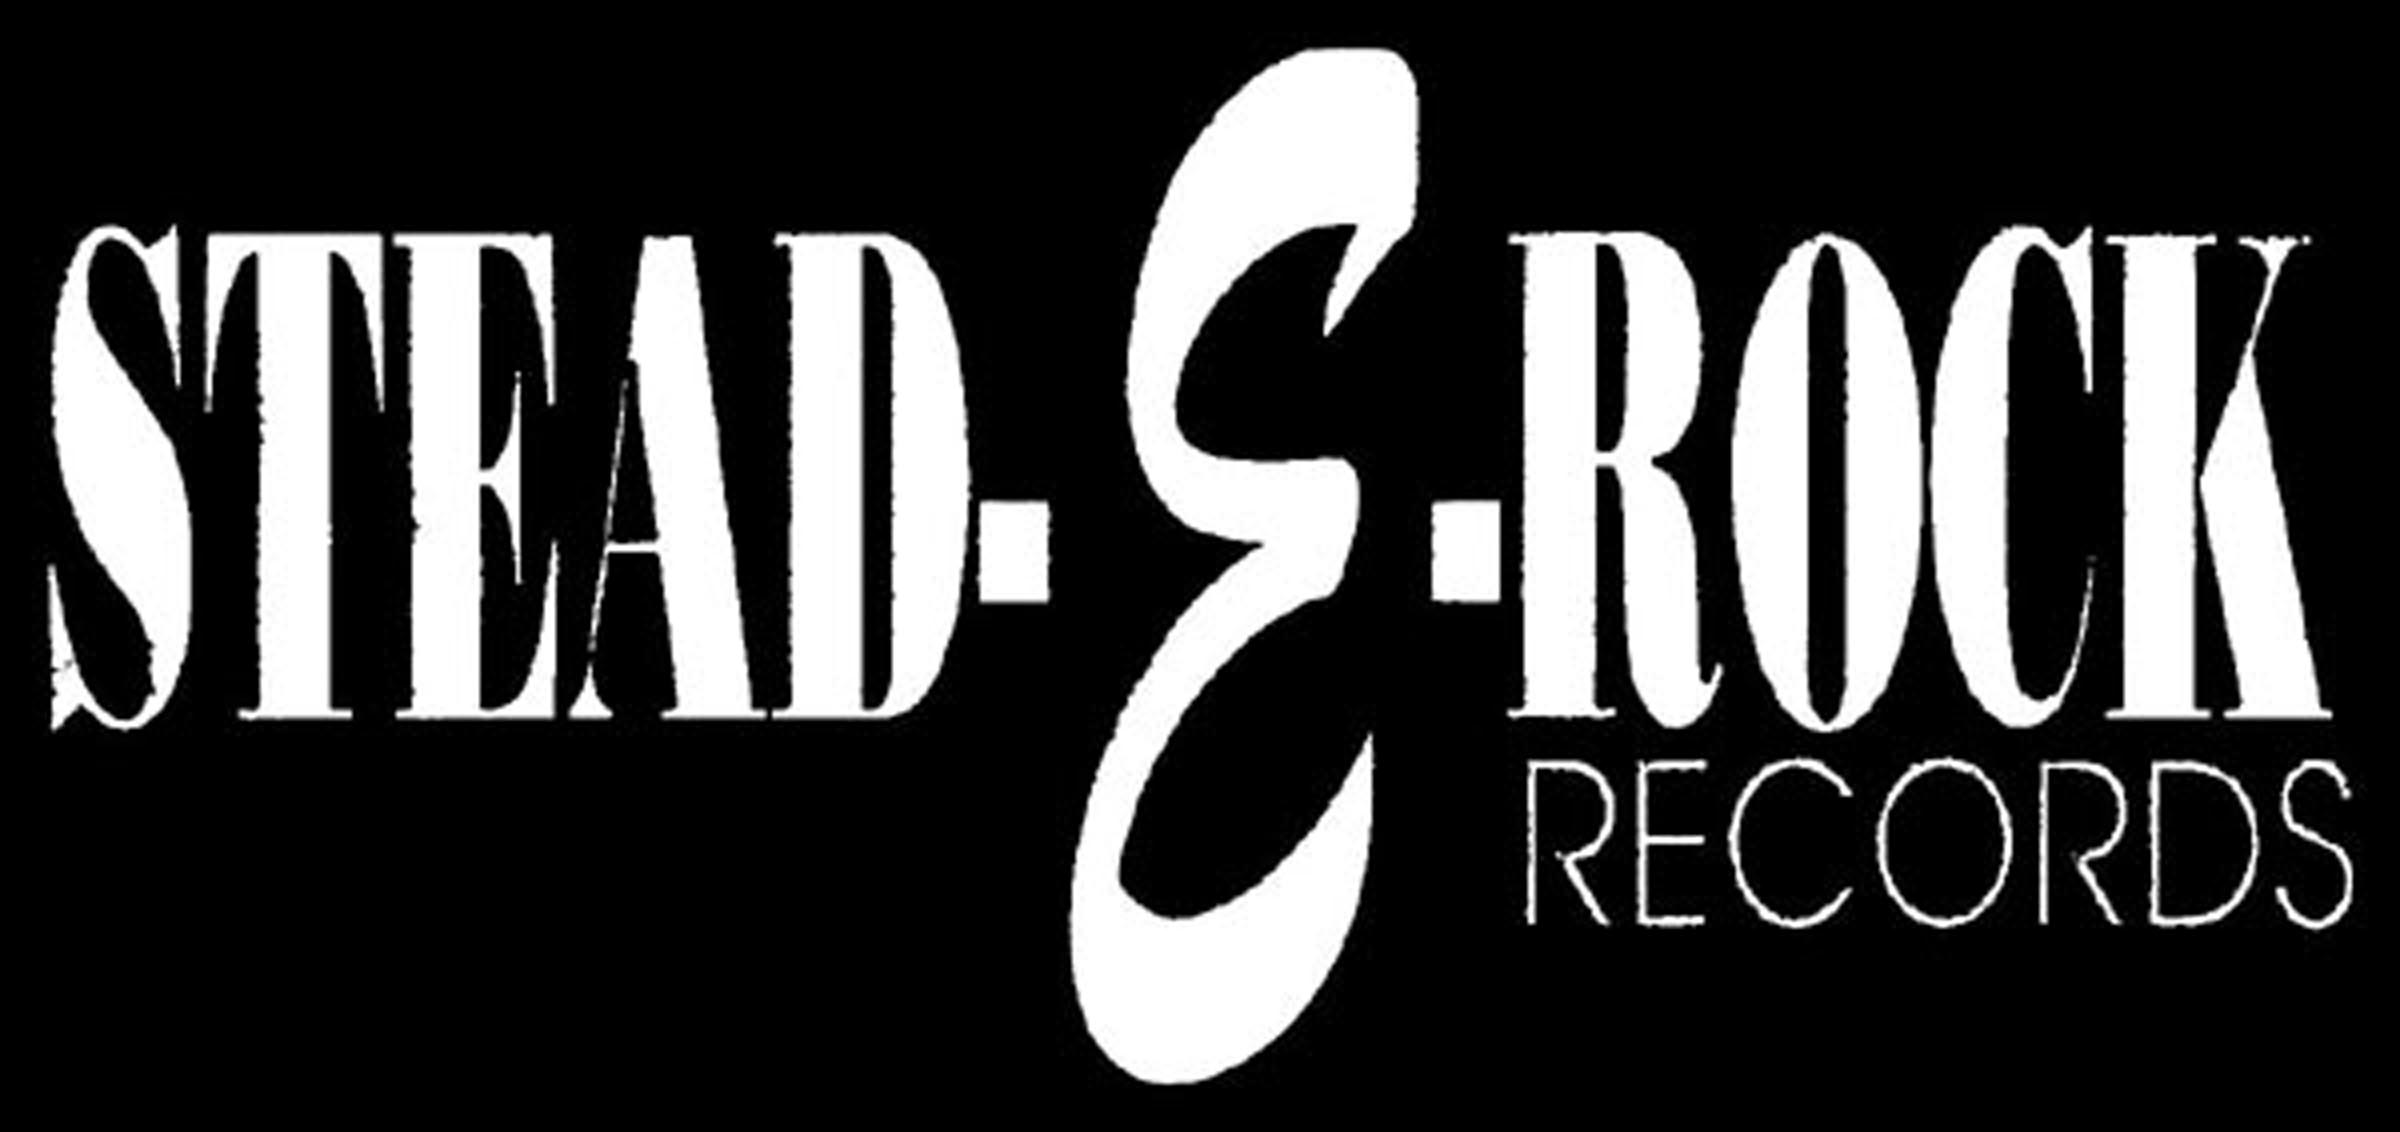 Stead-E-Rock Records.